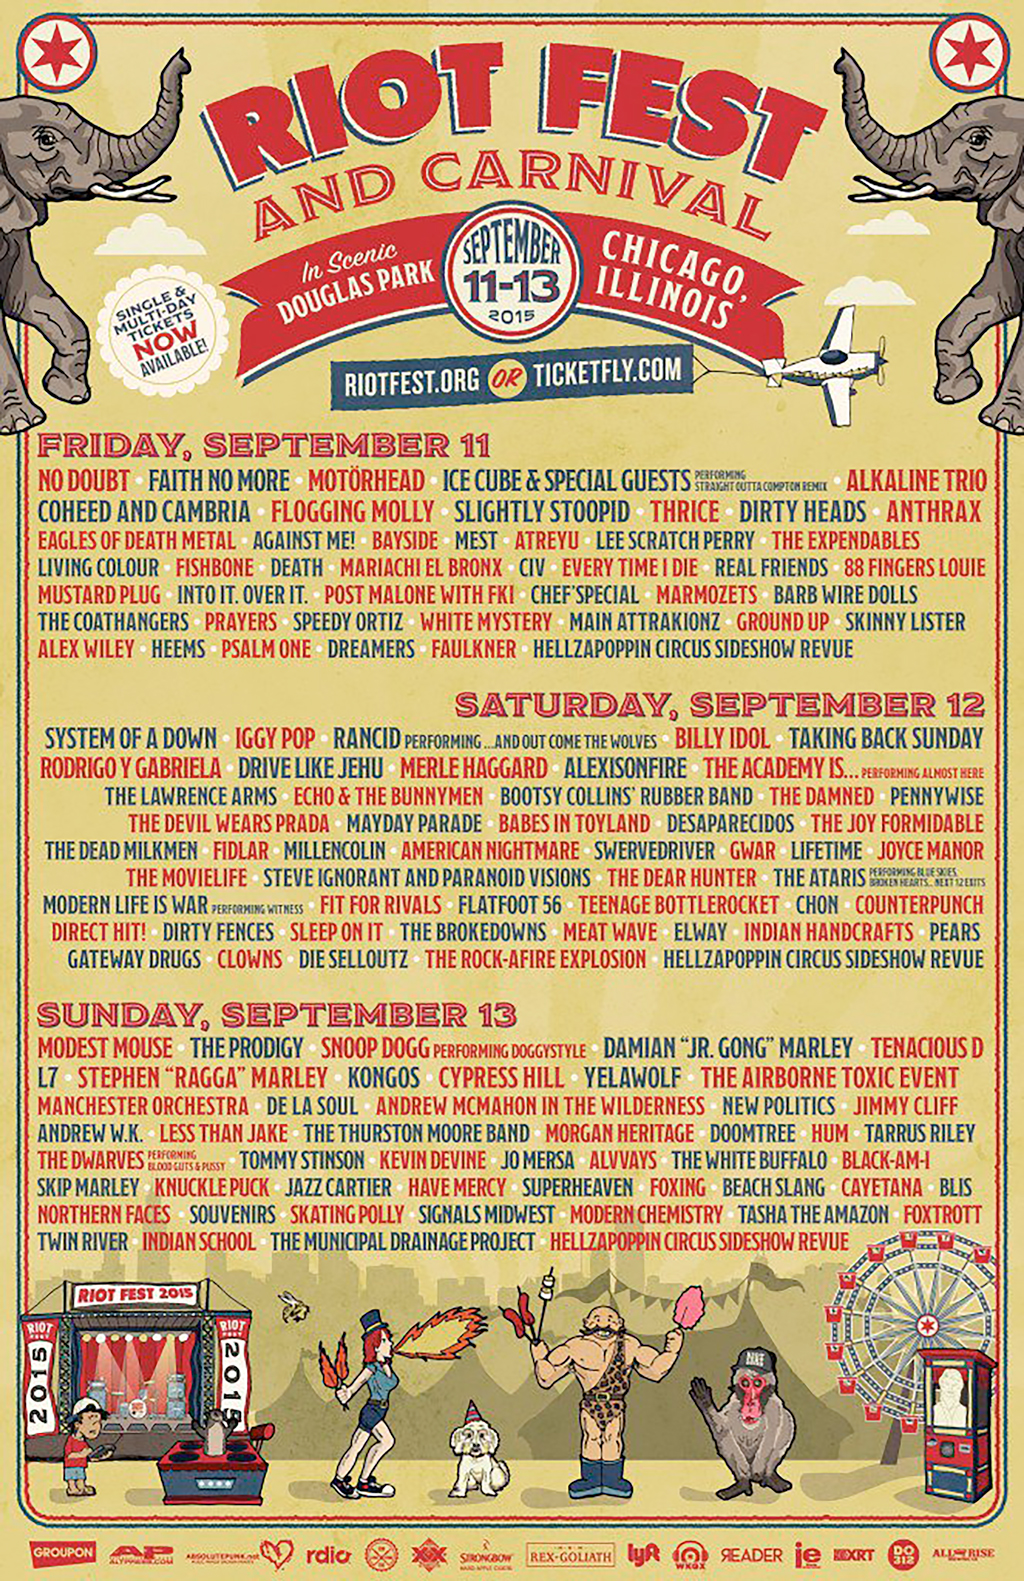 Just look at that lineup. Tell us there isn't ONE band you want to see on there. No Doubt? Iggy Pop? Billy Idol? Modest Mouse?? The Prodigy?? Snoop Dogg??? WOW. This is craziness!